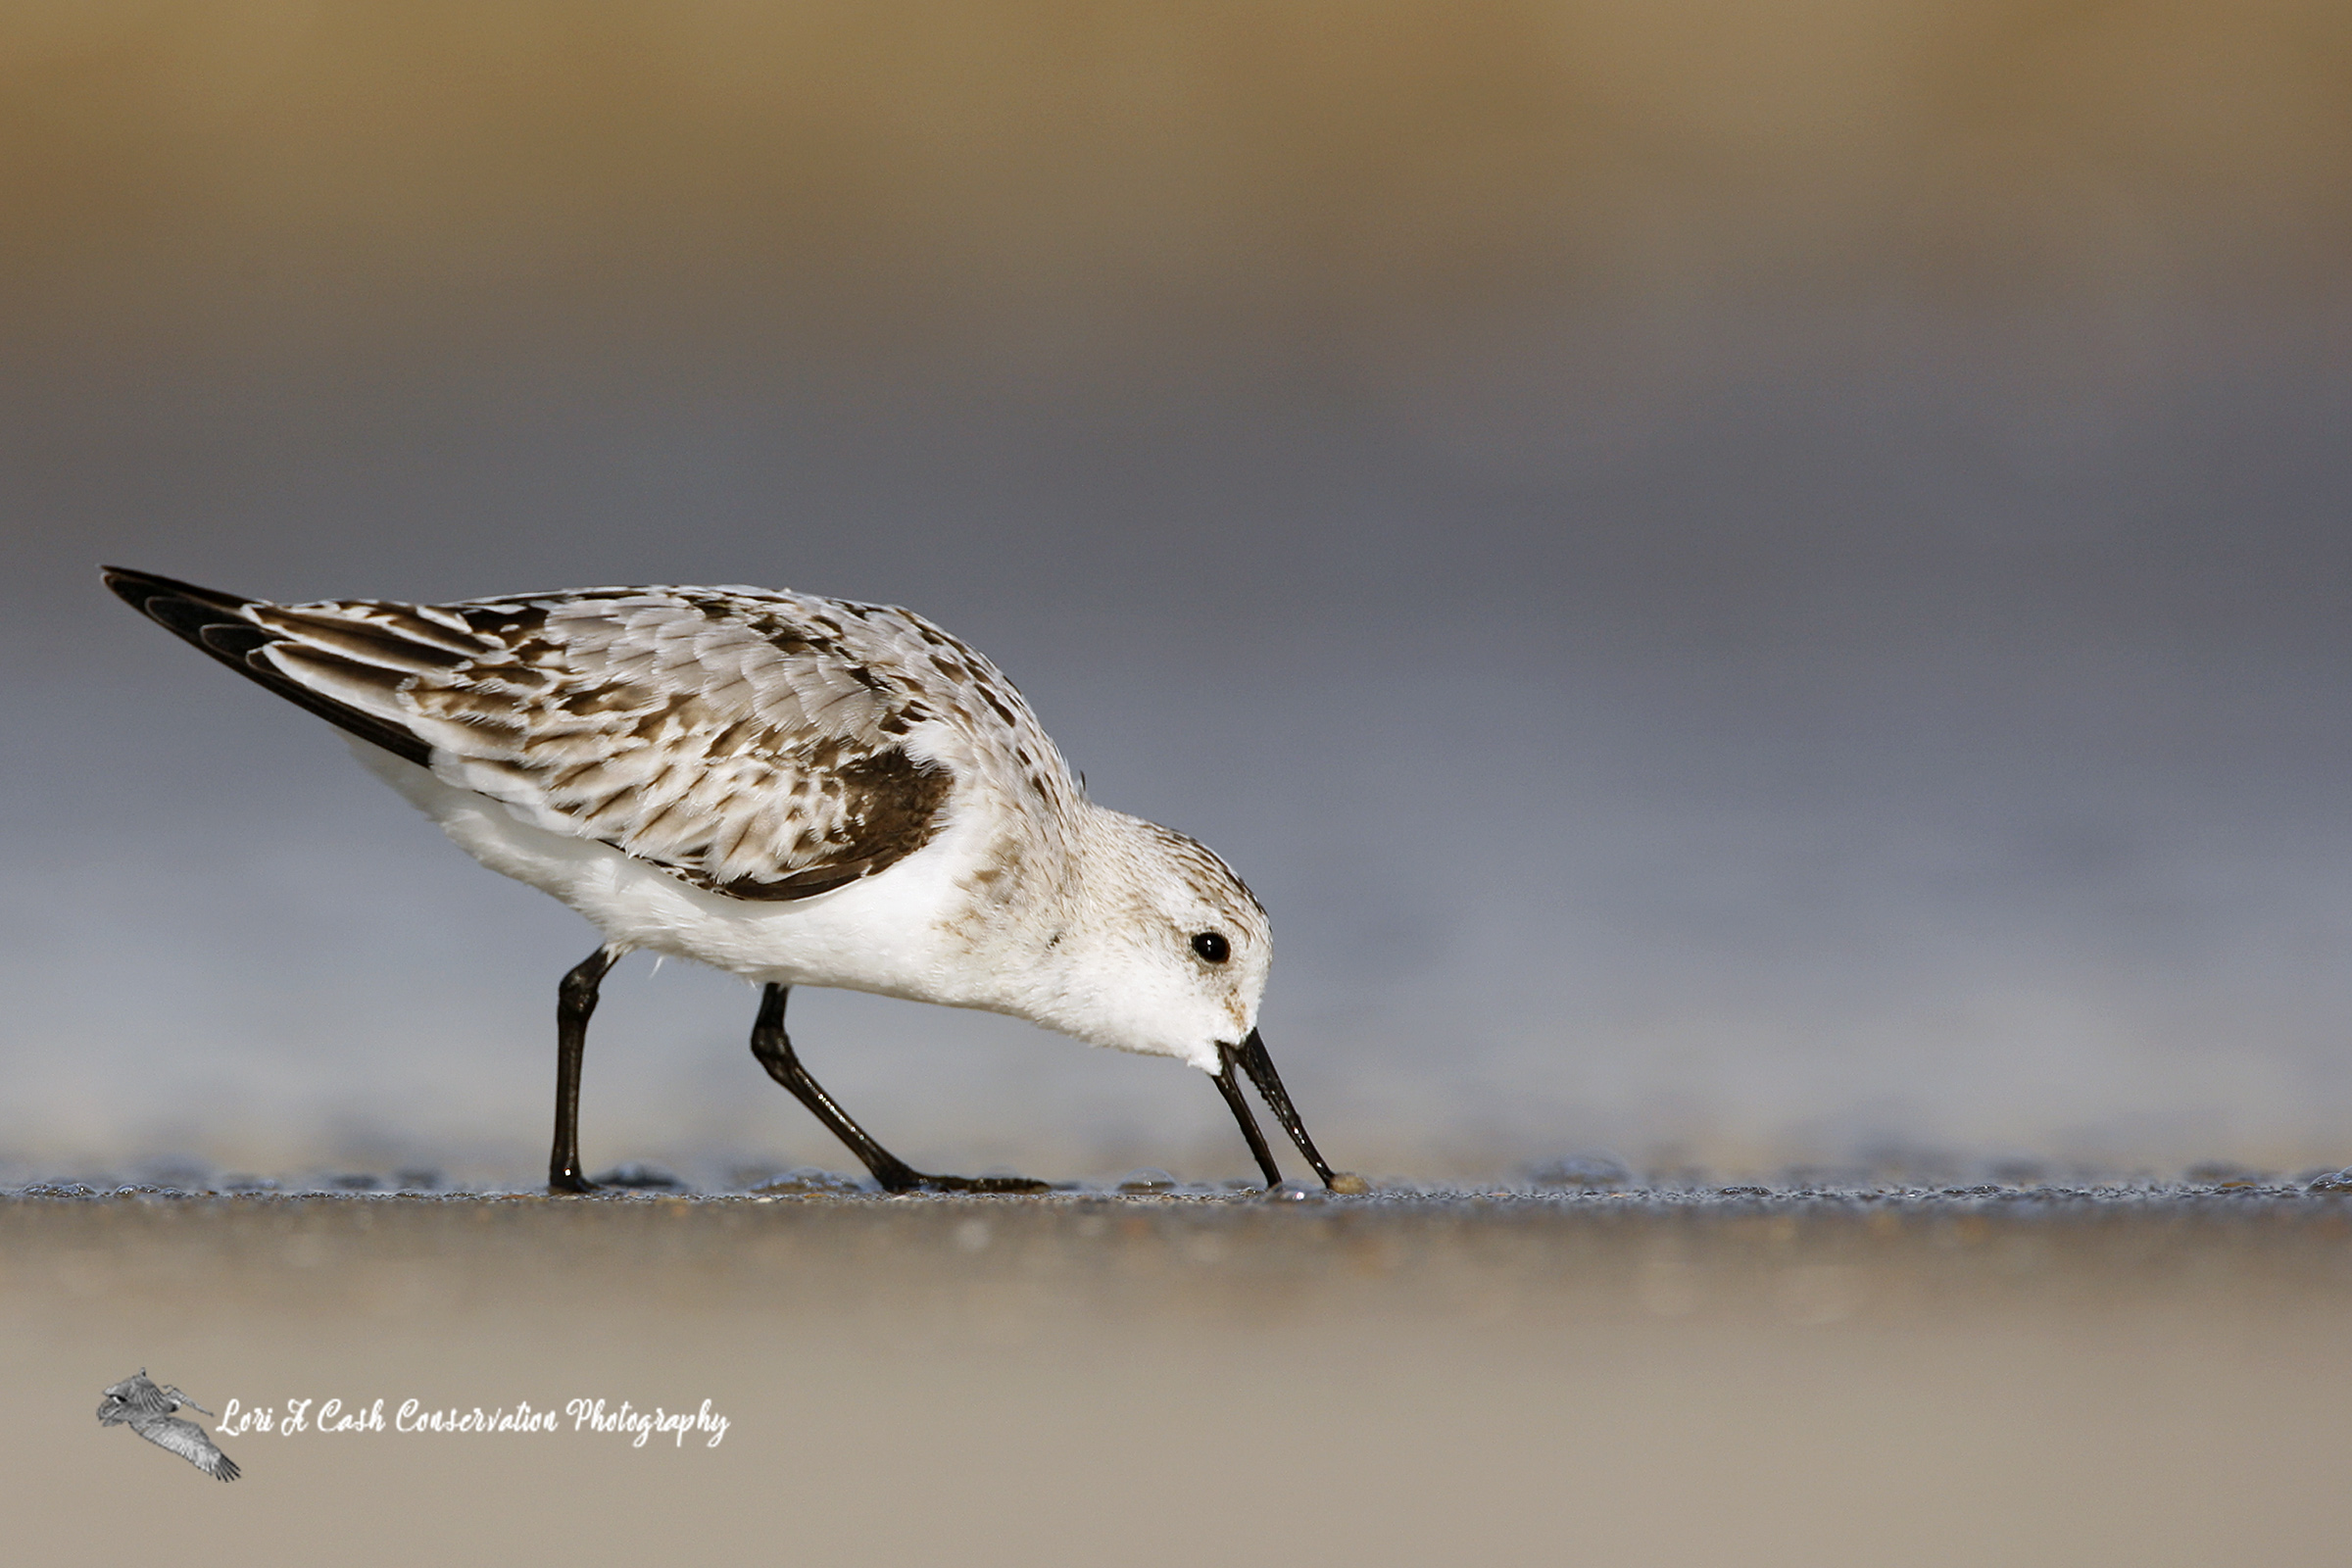 Sanderling searching for food on the beach at Pea Island National Wildlife Refuge on the Outer Banks of North Carolina.